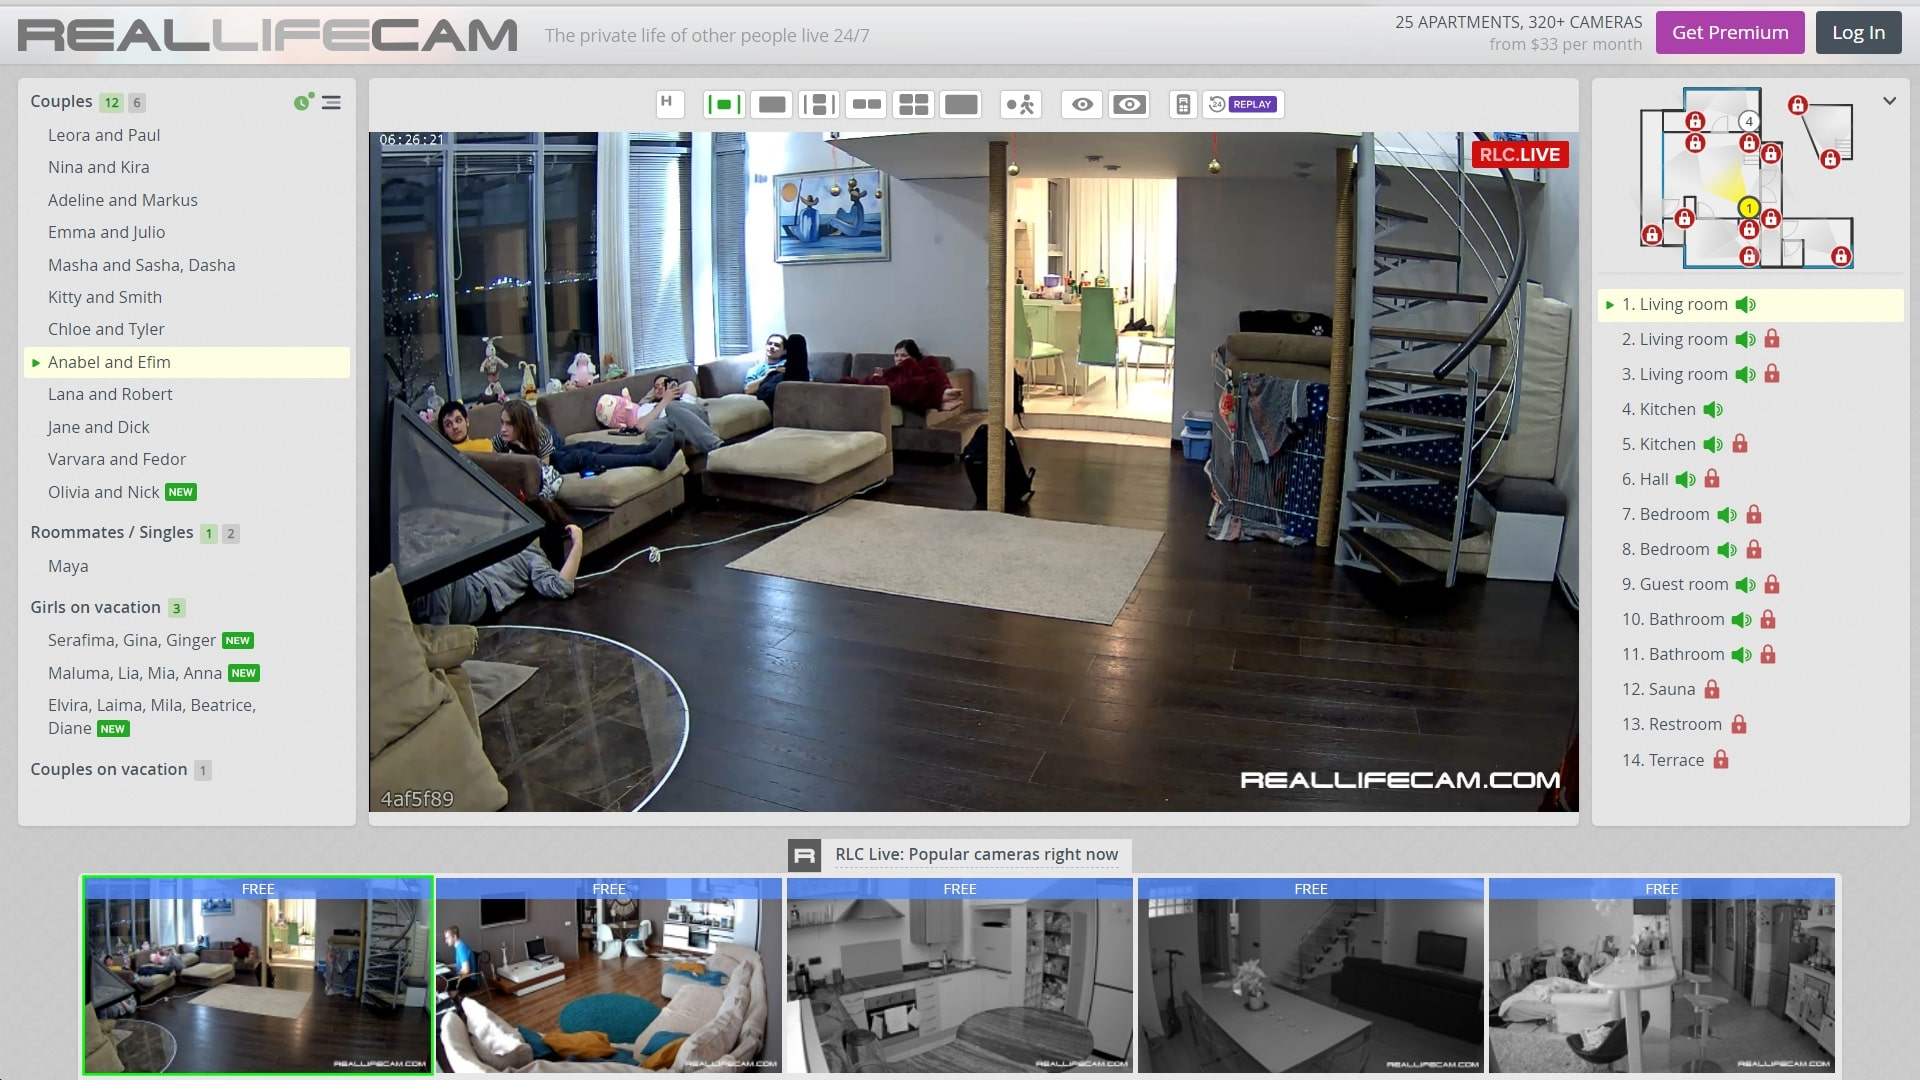 Real Life Cam Homepage